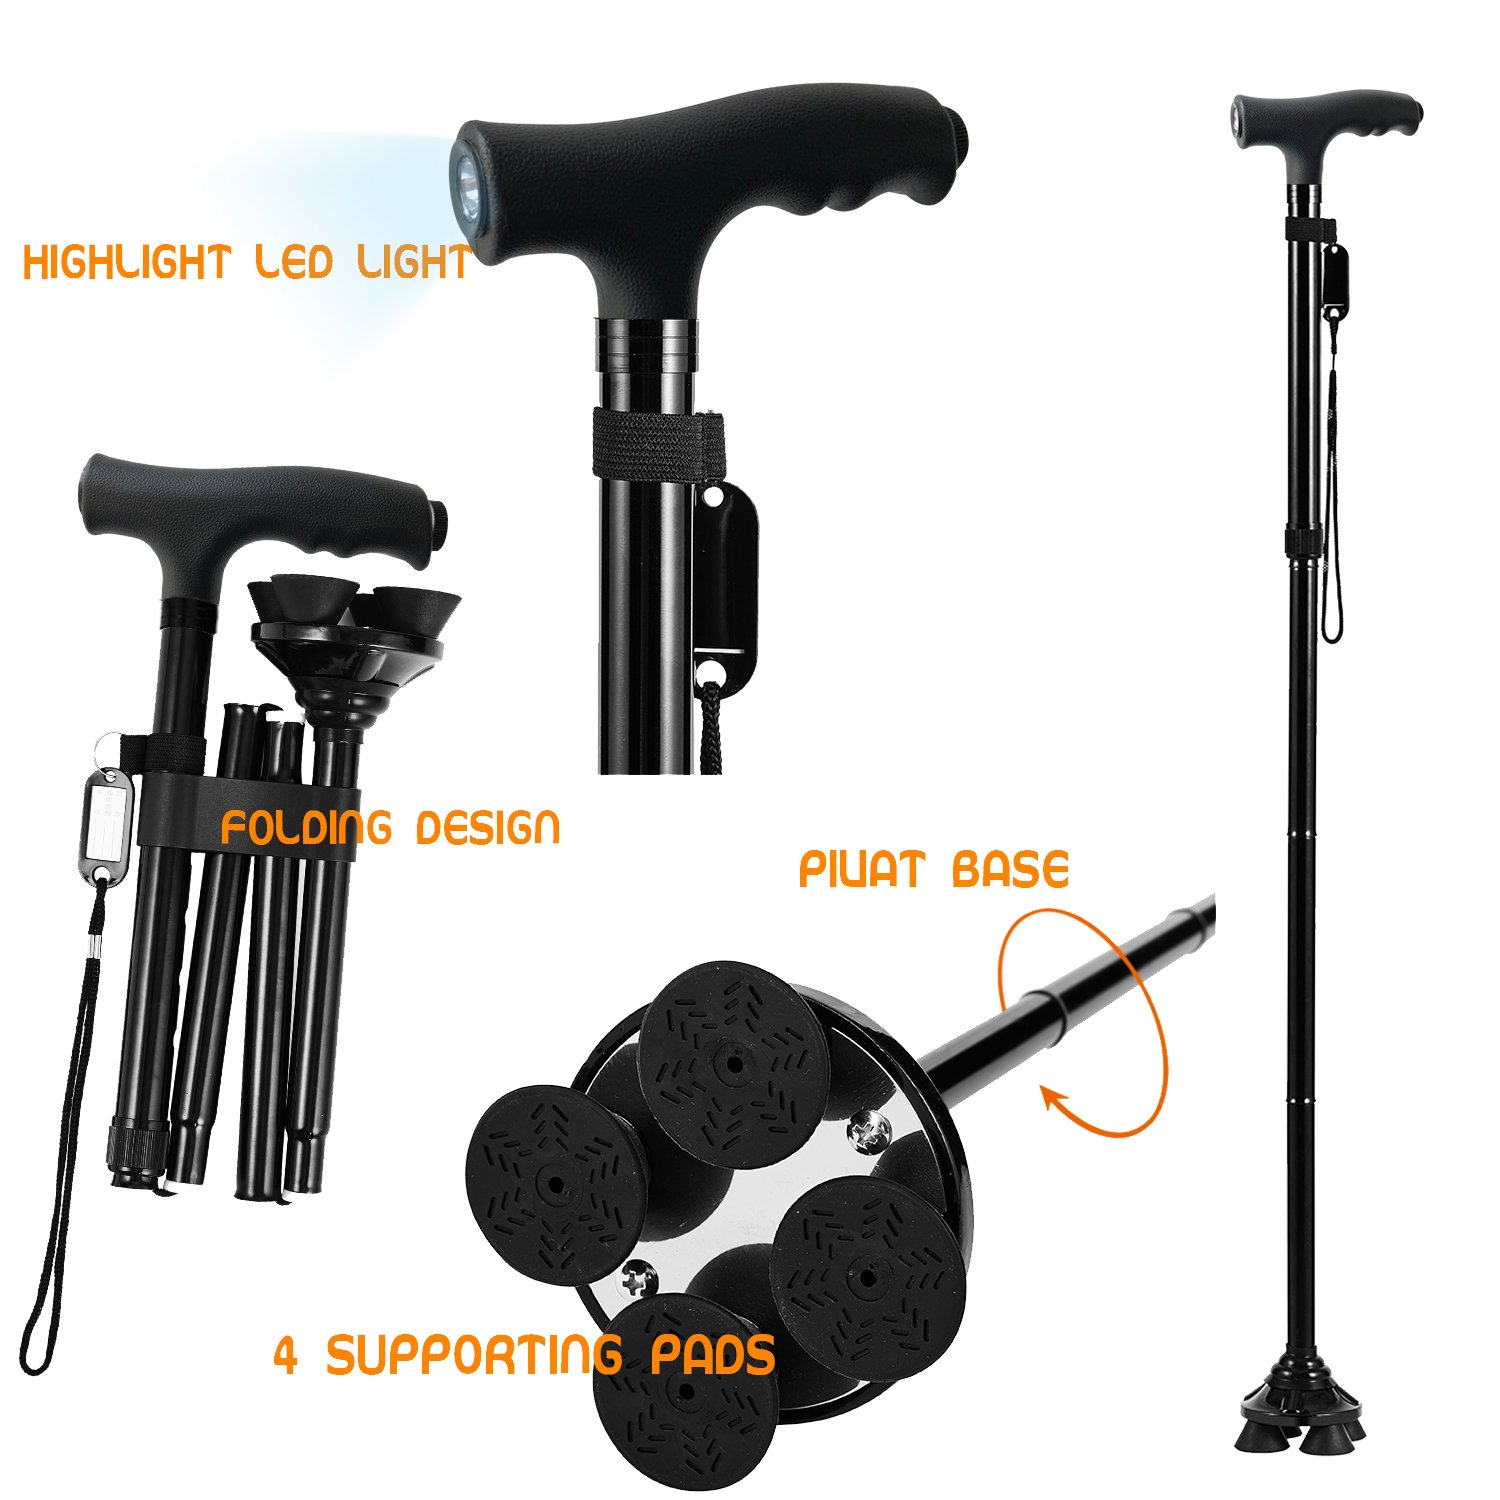 BigAlex Folding Walking Cane with LED Light,Adjustable & Portable Walking Stick, Lightweight,Collapsible with Carrying Bag for Men/Woman(Large) by BigAlex (Image #4)